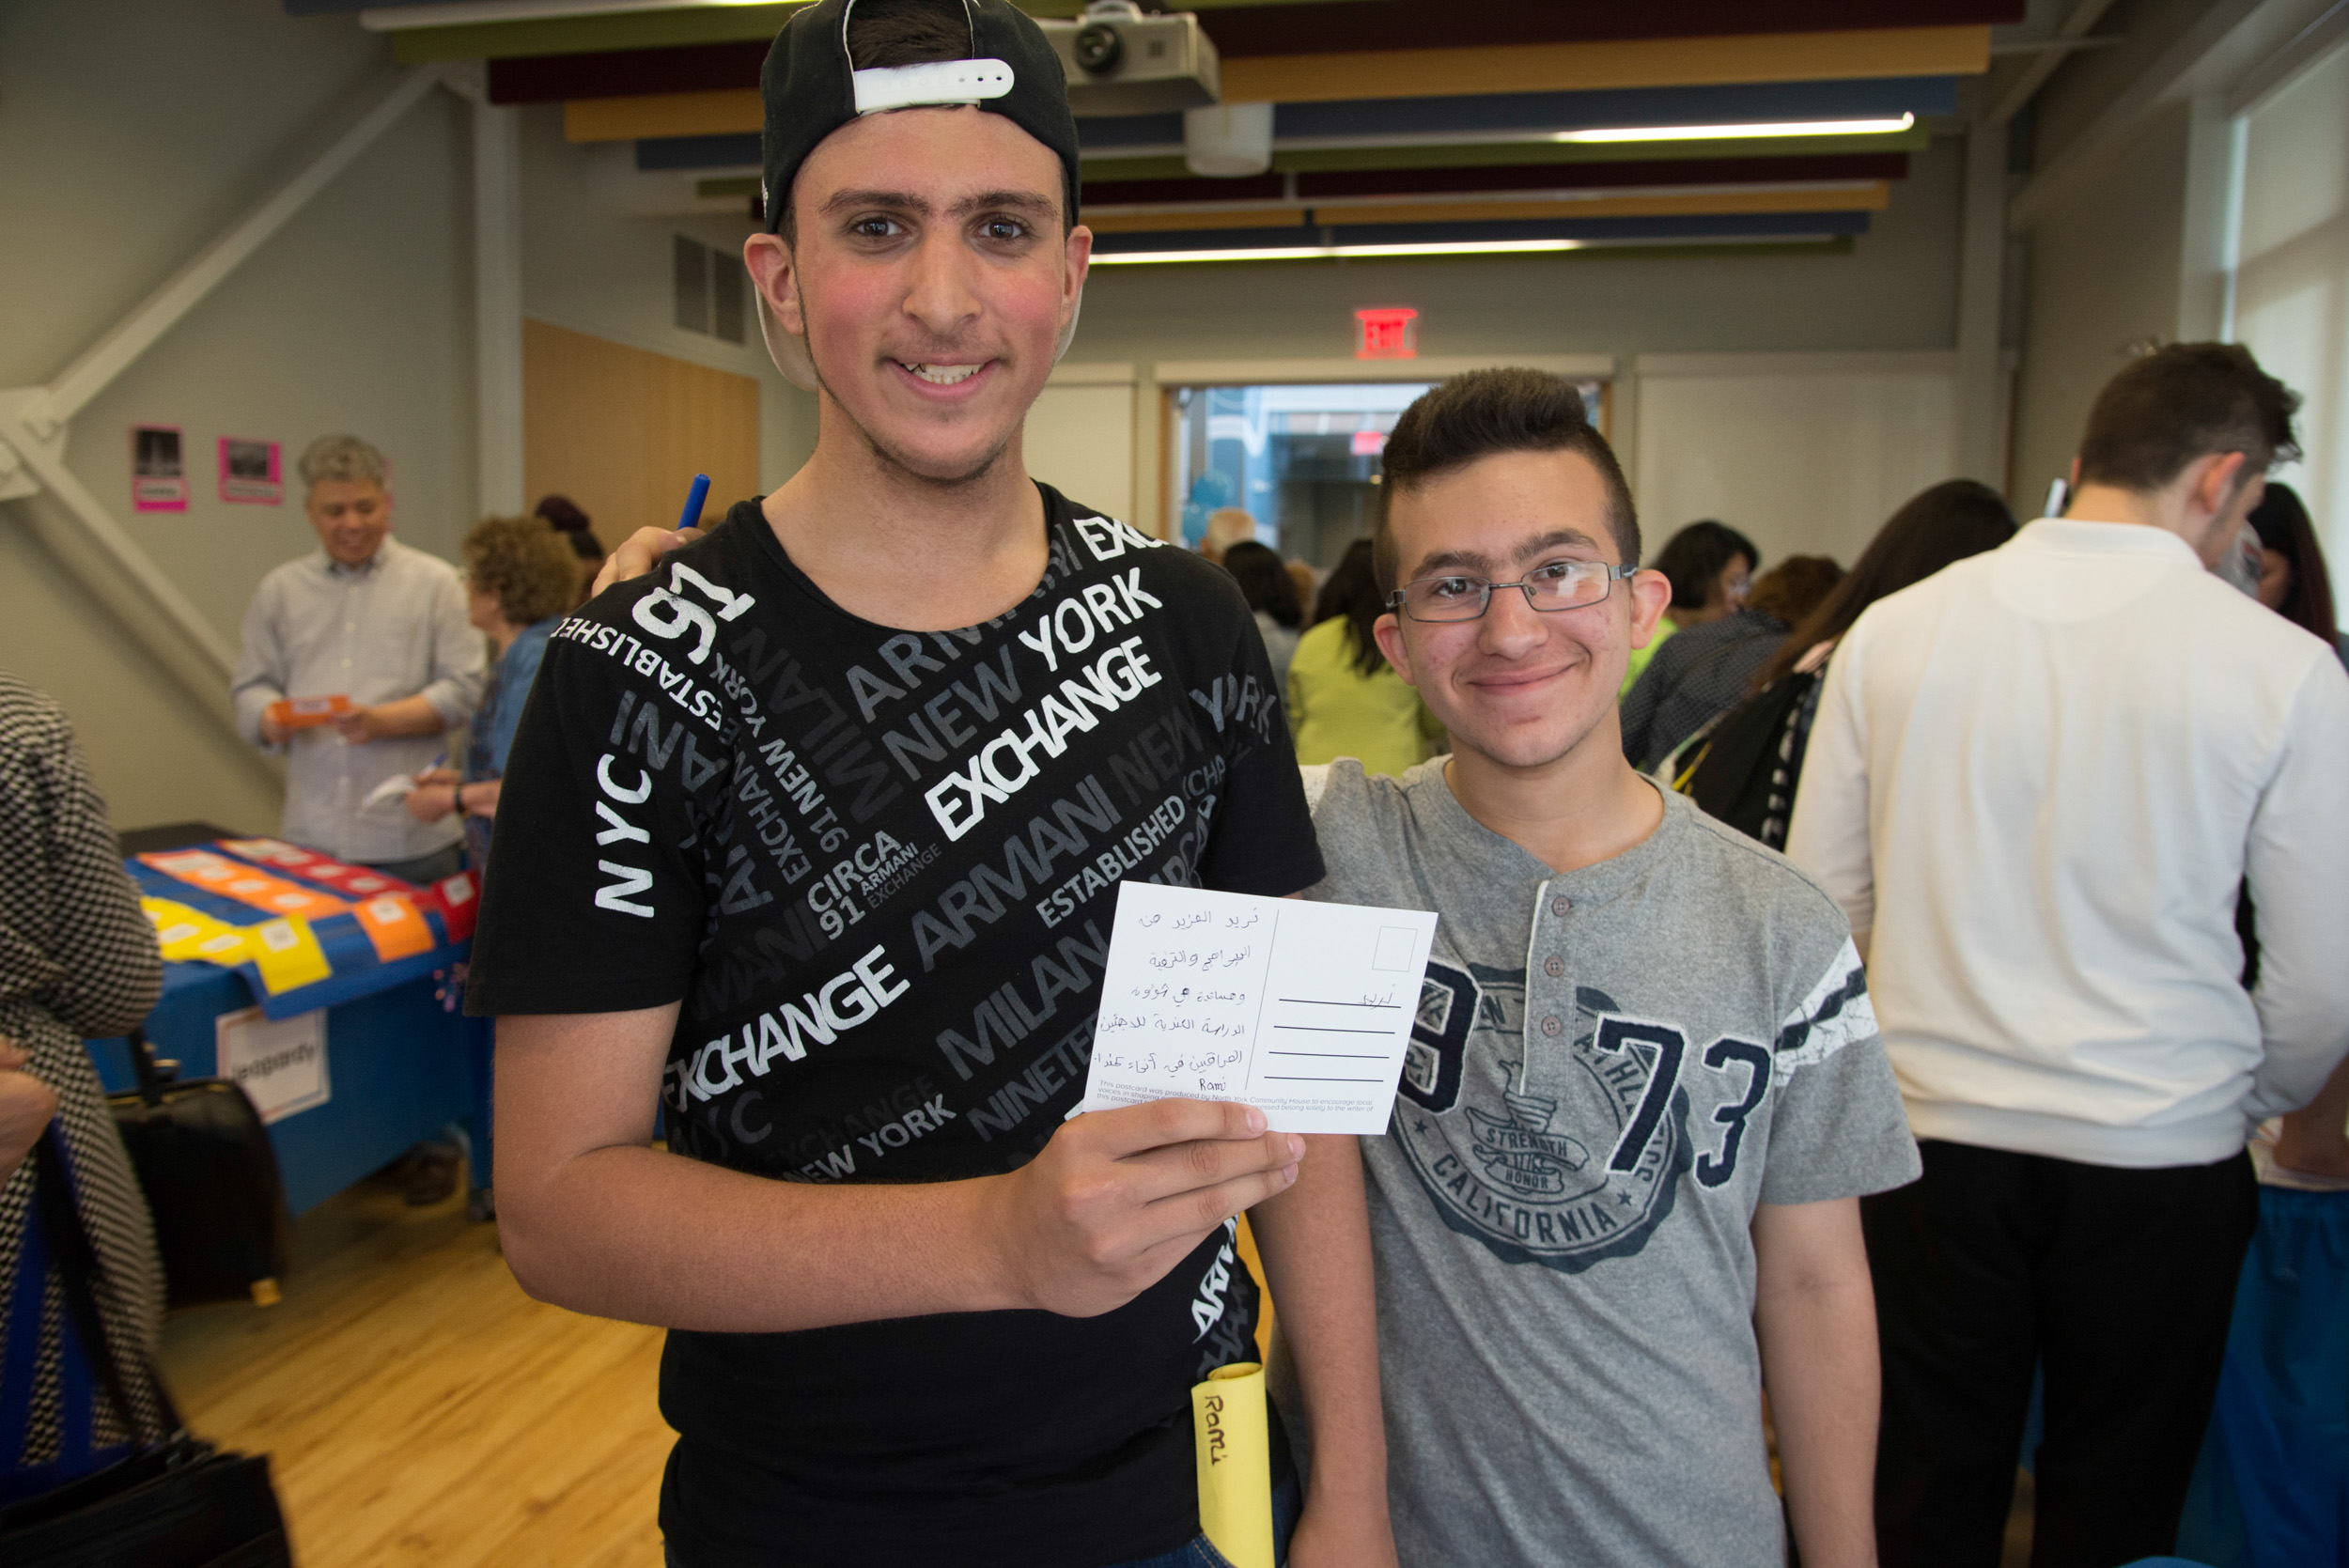 Two young participants show off a postcard to their elected official